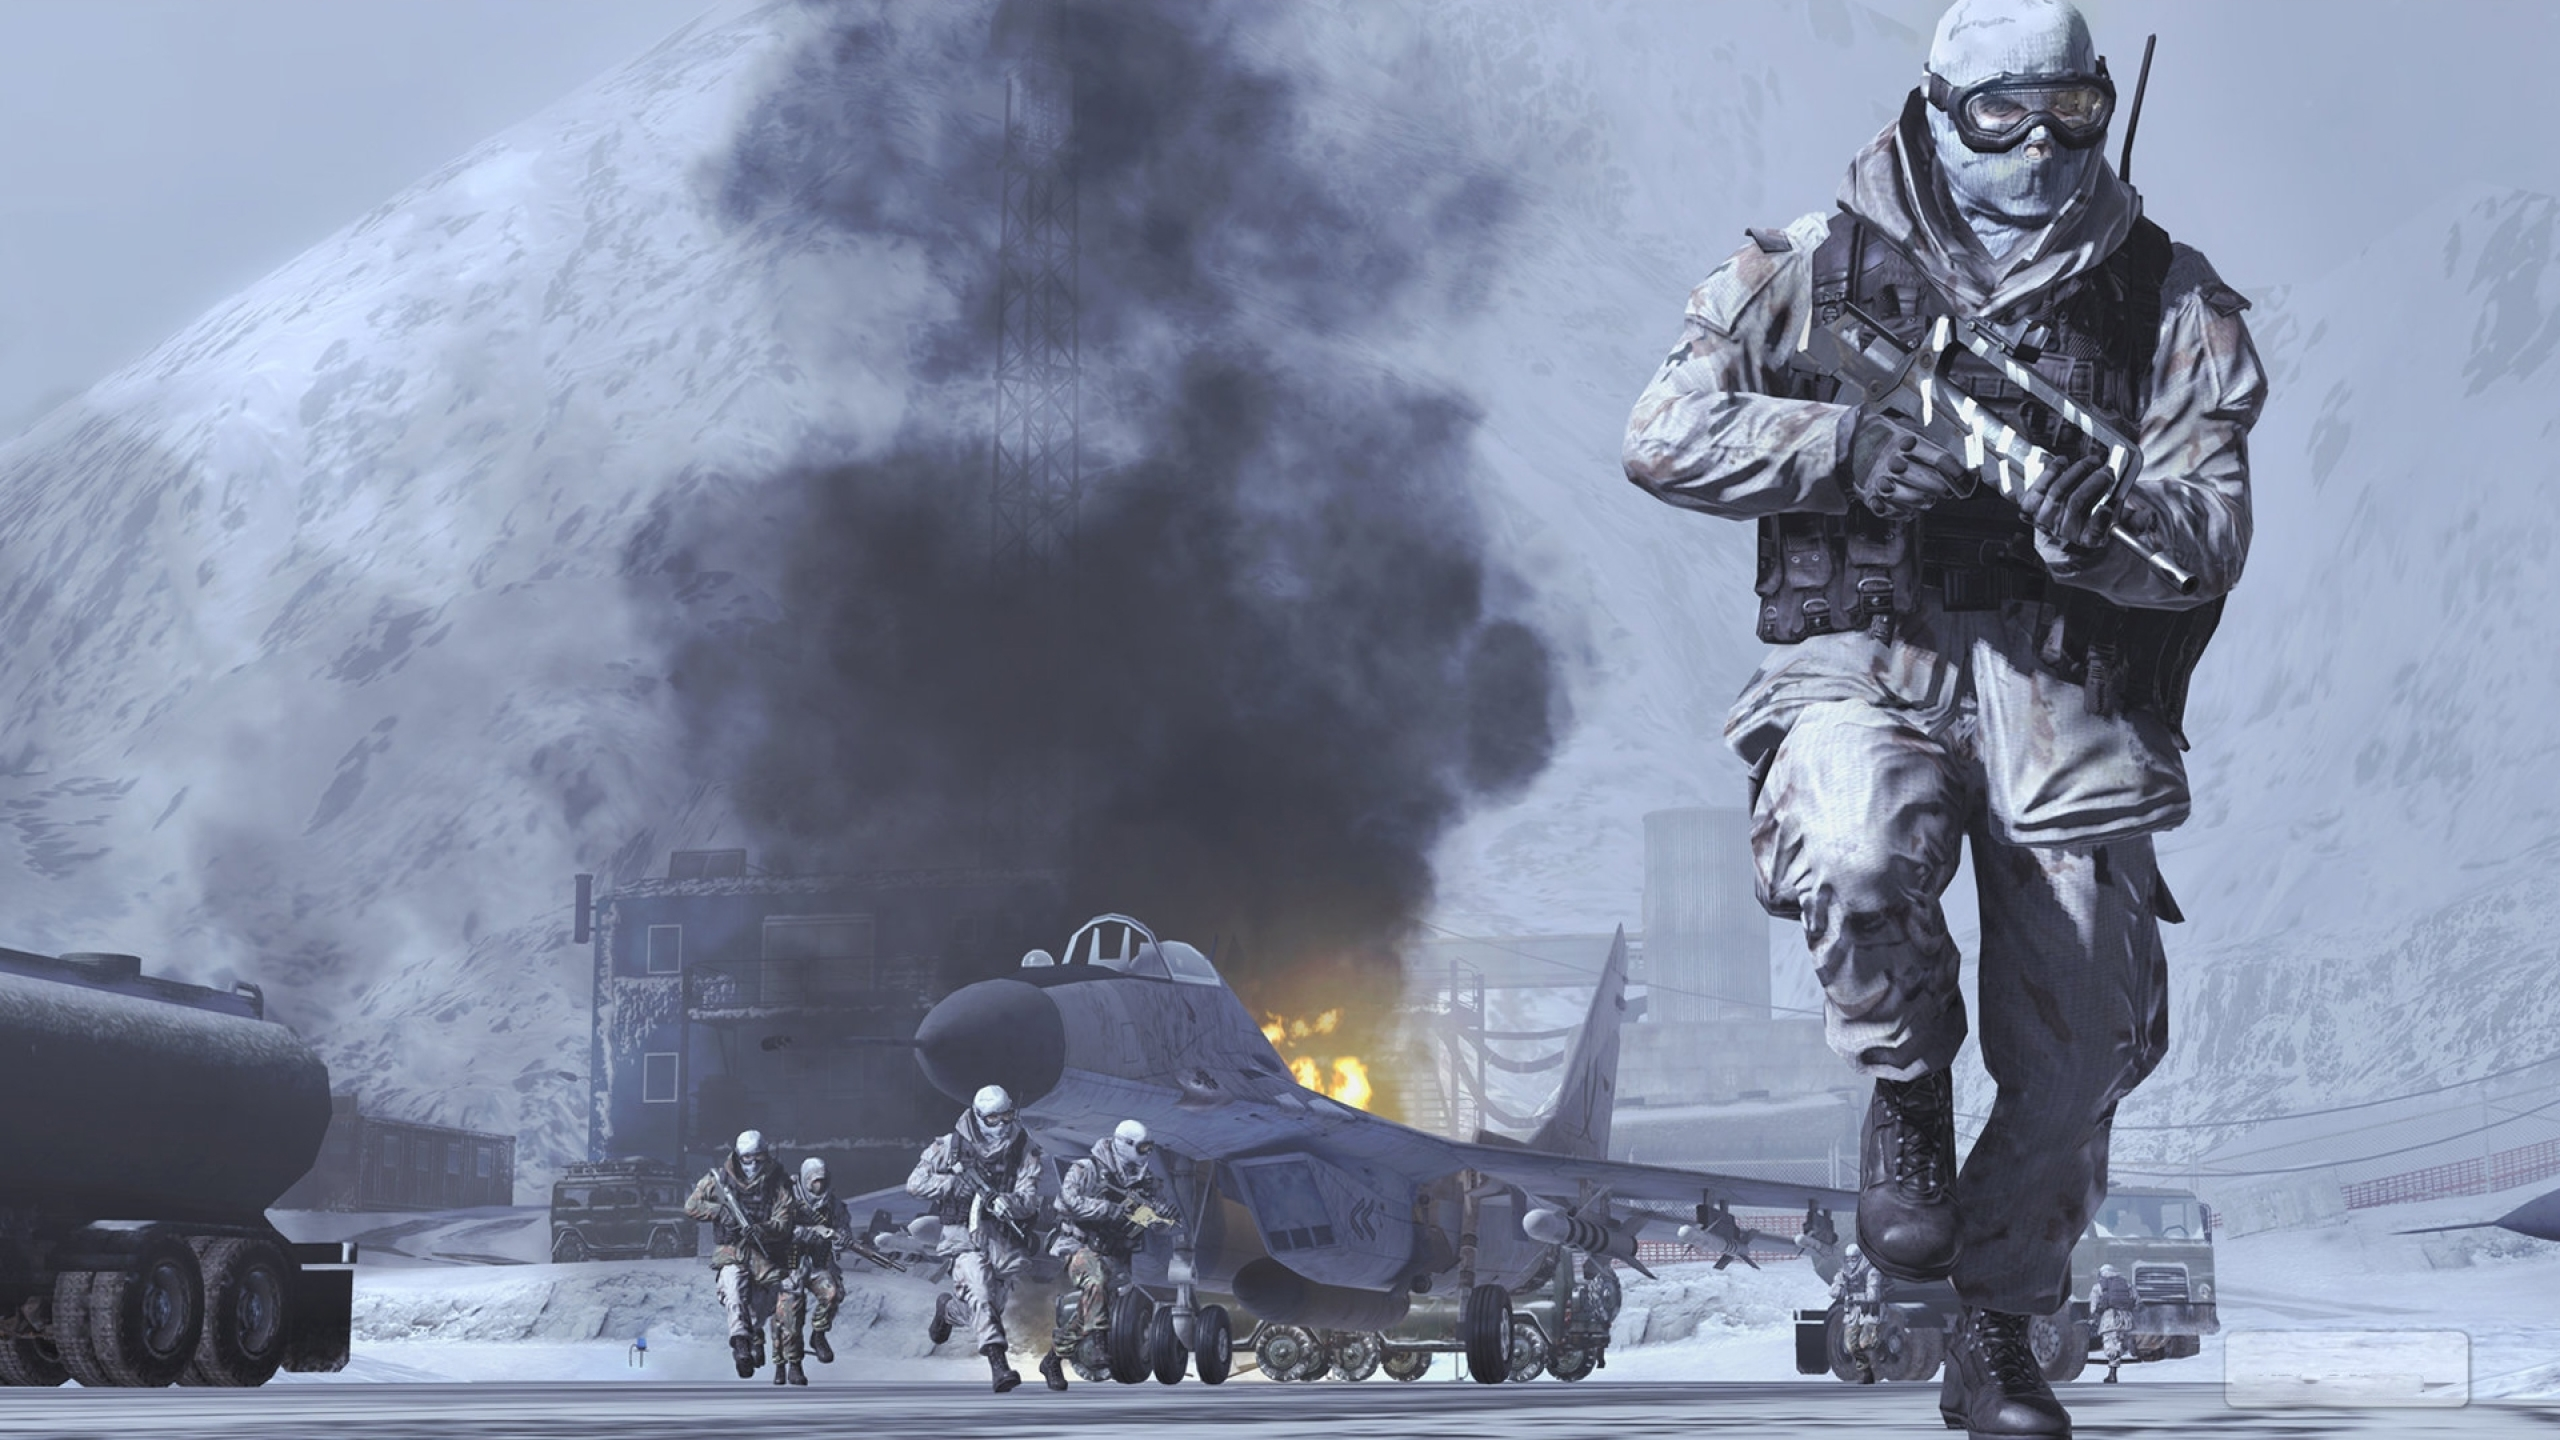 2560x1440 Call Of Duty Modern Warfare 2 Soldiers In Snow 1440p